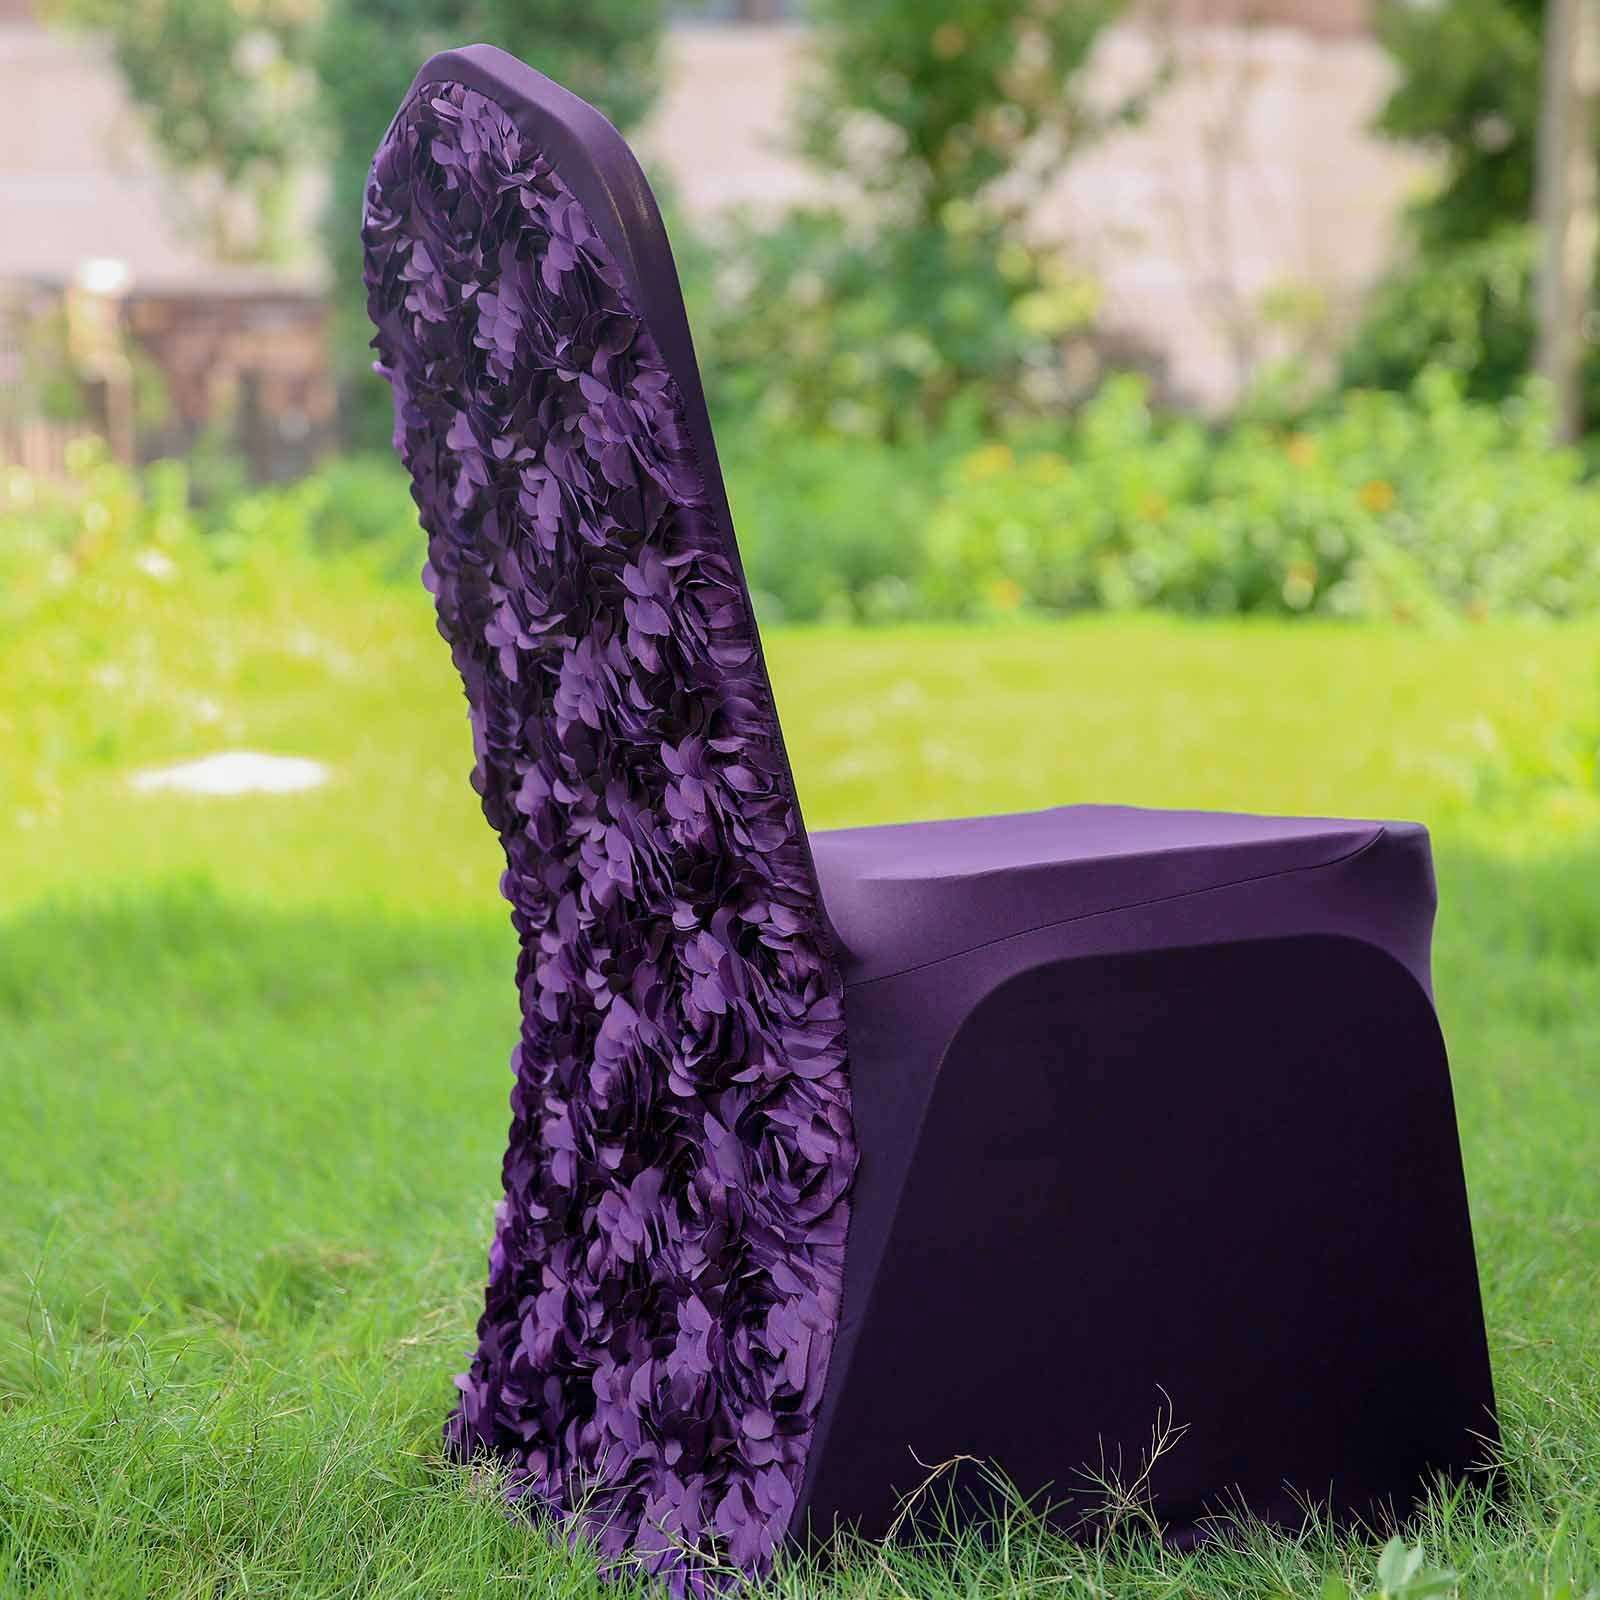 Strange Satin Rosette Eggplant Stretch Banquet Spandex Chair Cover Machost Co Dining Chair Design Ideas Machostcouk